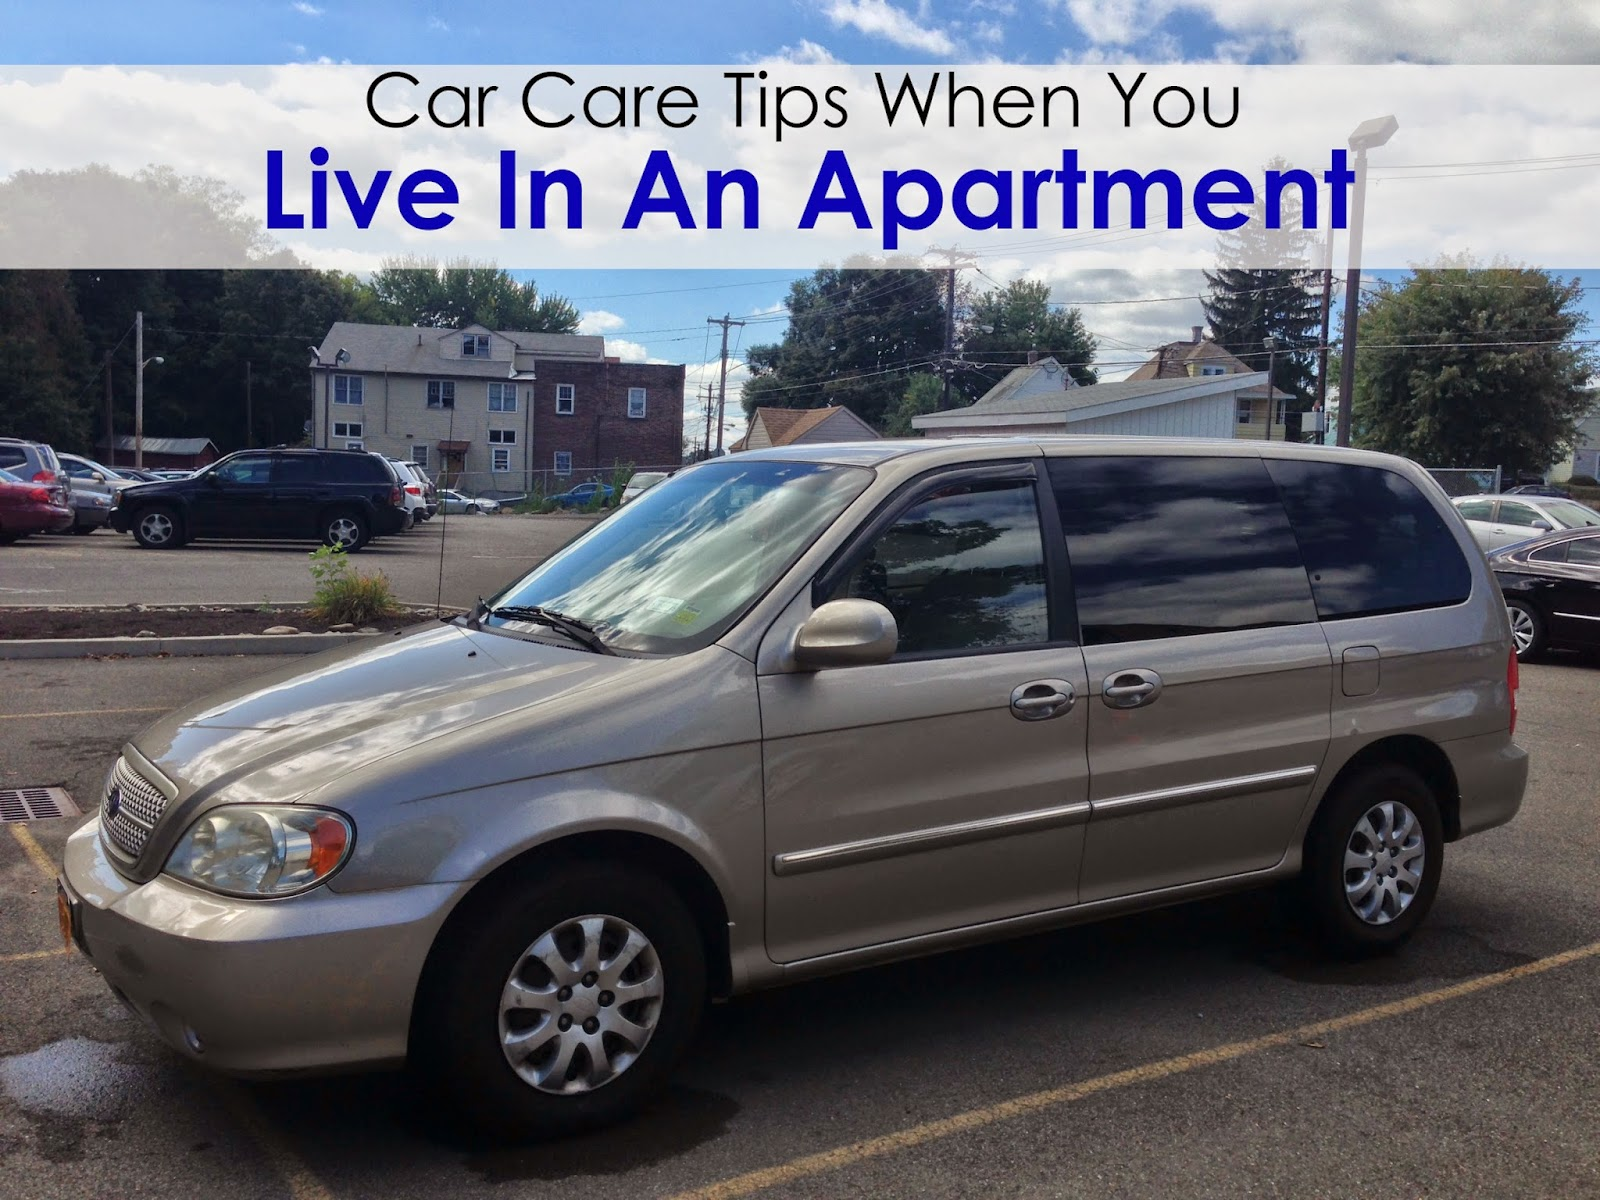 Car Care Tips When You Live in an Apartment #carcare #washdrops #carwash #client